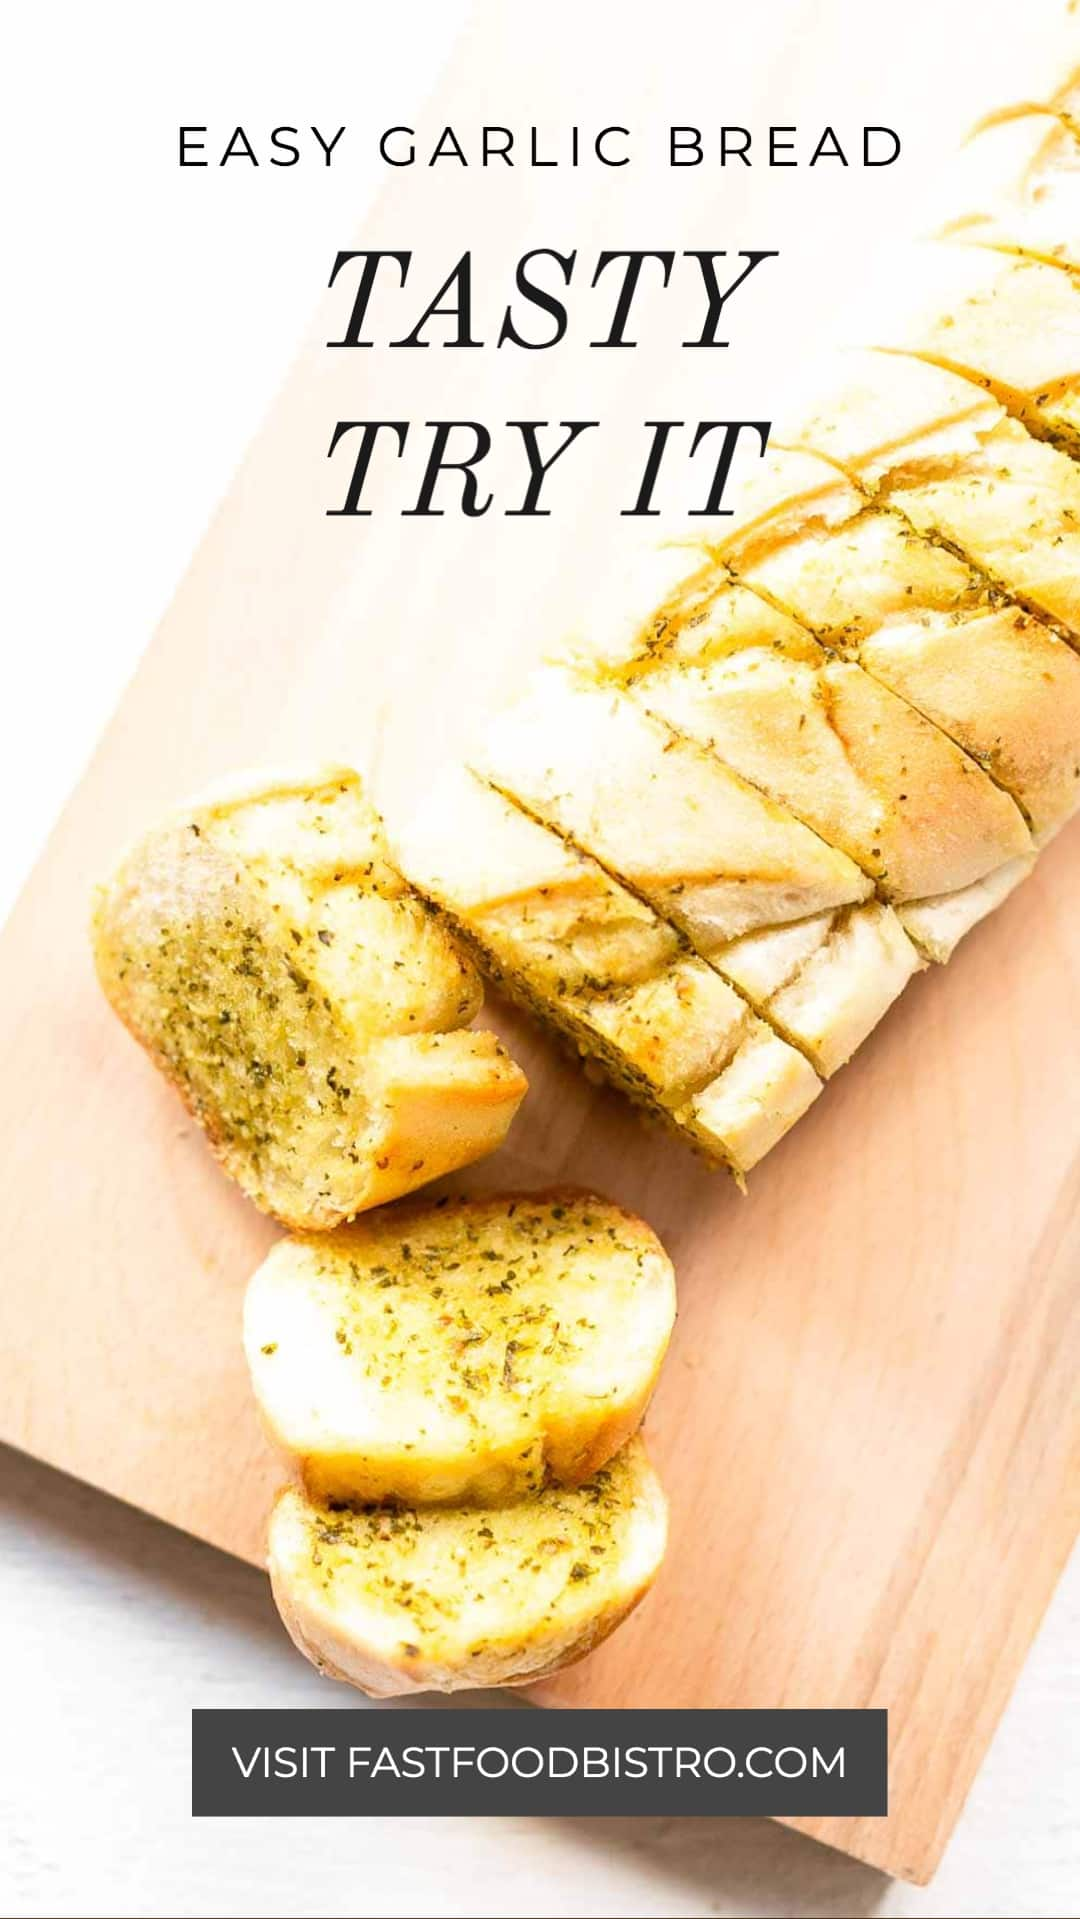 Try this quick and easy garlic bread that you can serve as a side dish or as a starter. Make with soft French baguette and pesto. Want to try visit fastfoodbistro.com for the full recipe #fastfoodbistro #garlicbread #breadrecipe #baguette #sidedish